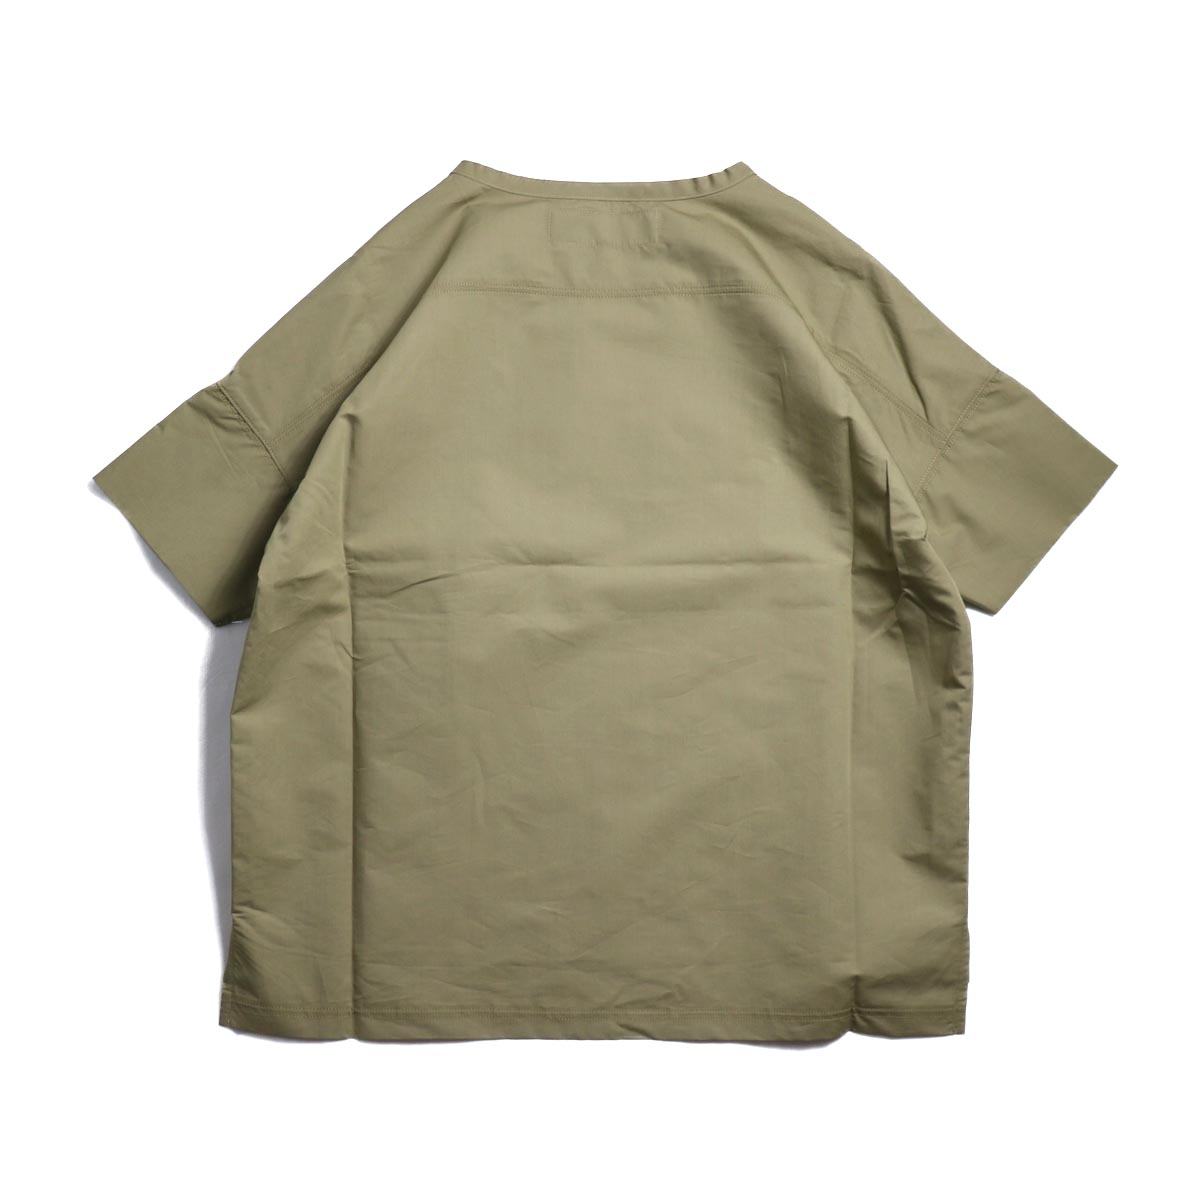 BASISBROEK / REMI -Cotton Silk PO Shirt (CHINO) 背面